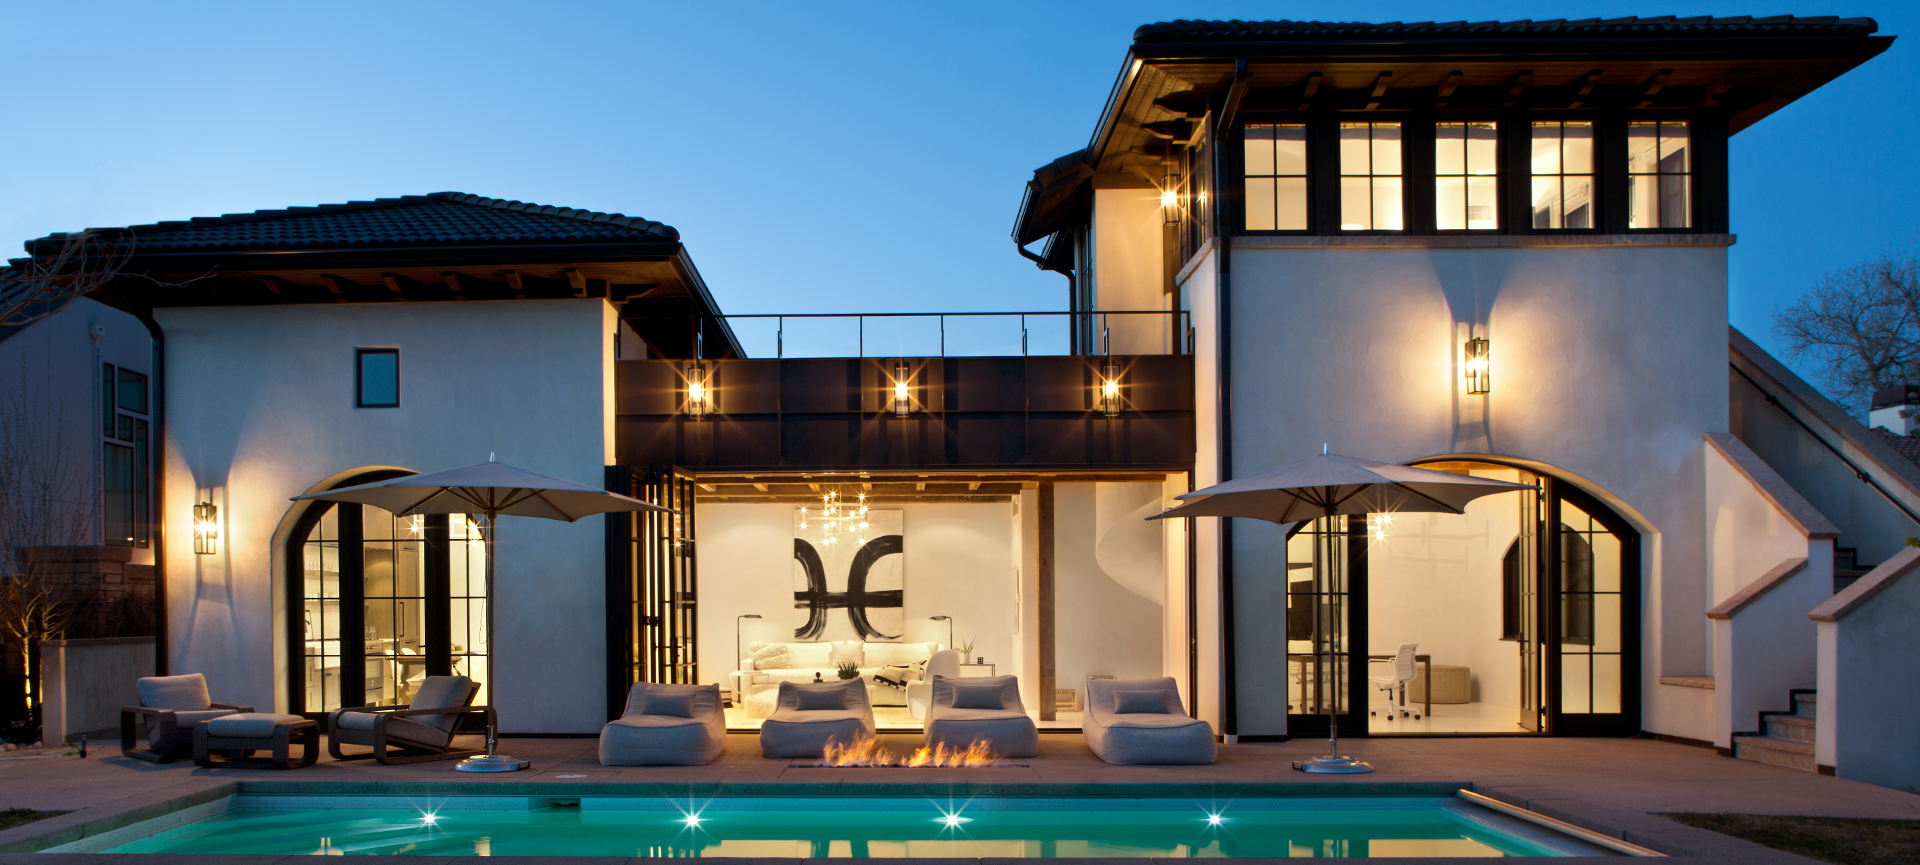 Luxury Denver Pool House